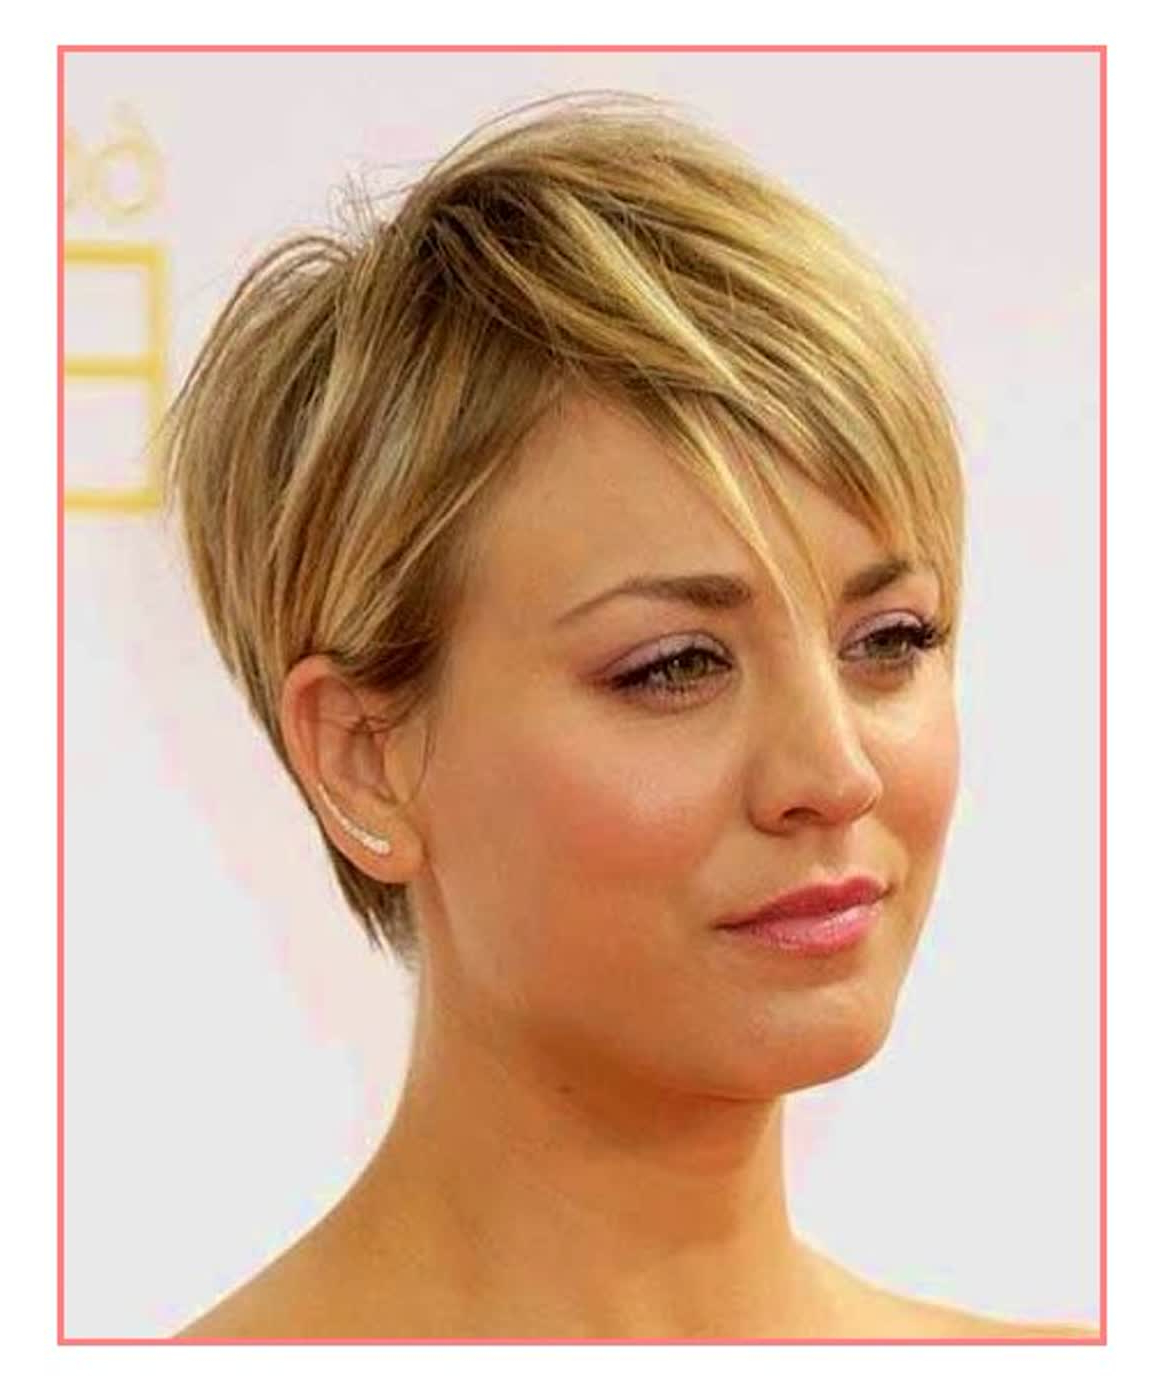 Short Hairstyles For Thin Hair Women – Hairstyles Ideas Throughout Short Hairstyles For Thin Fine Hair (View 15 of 25)